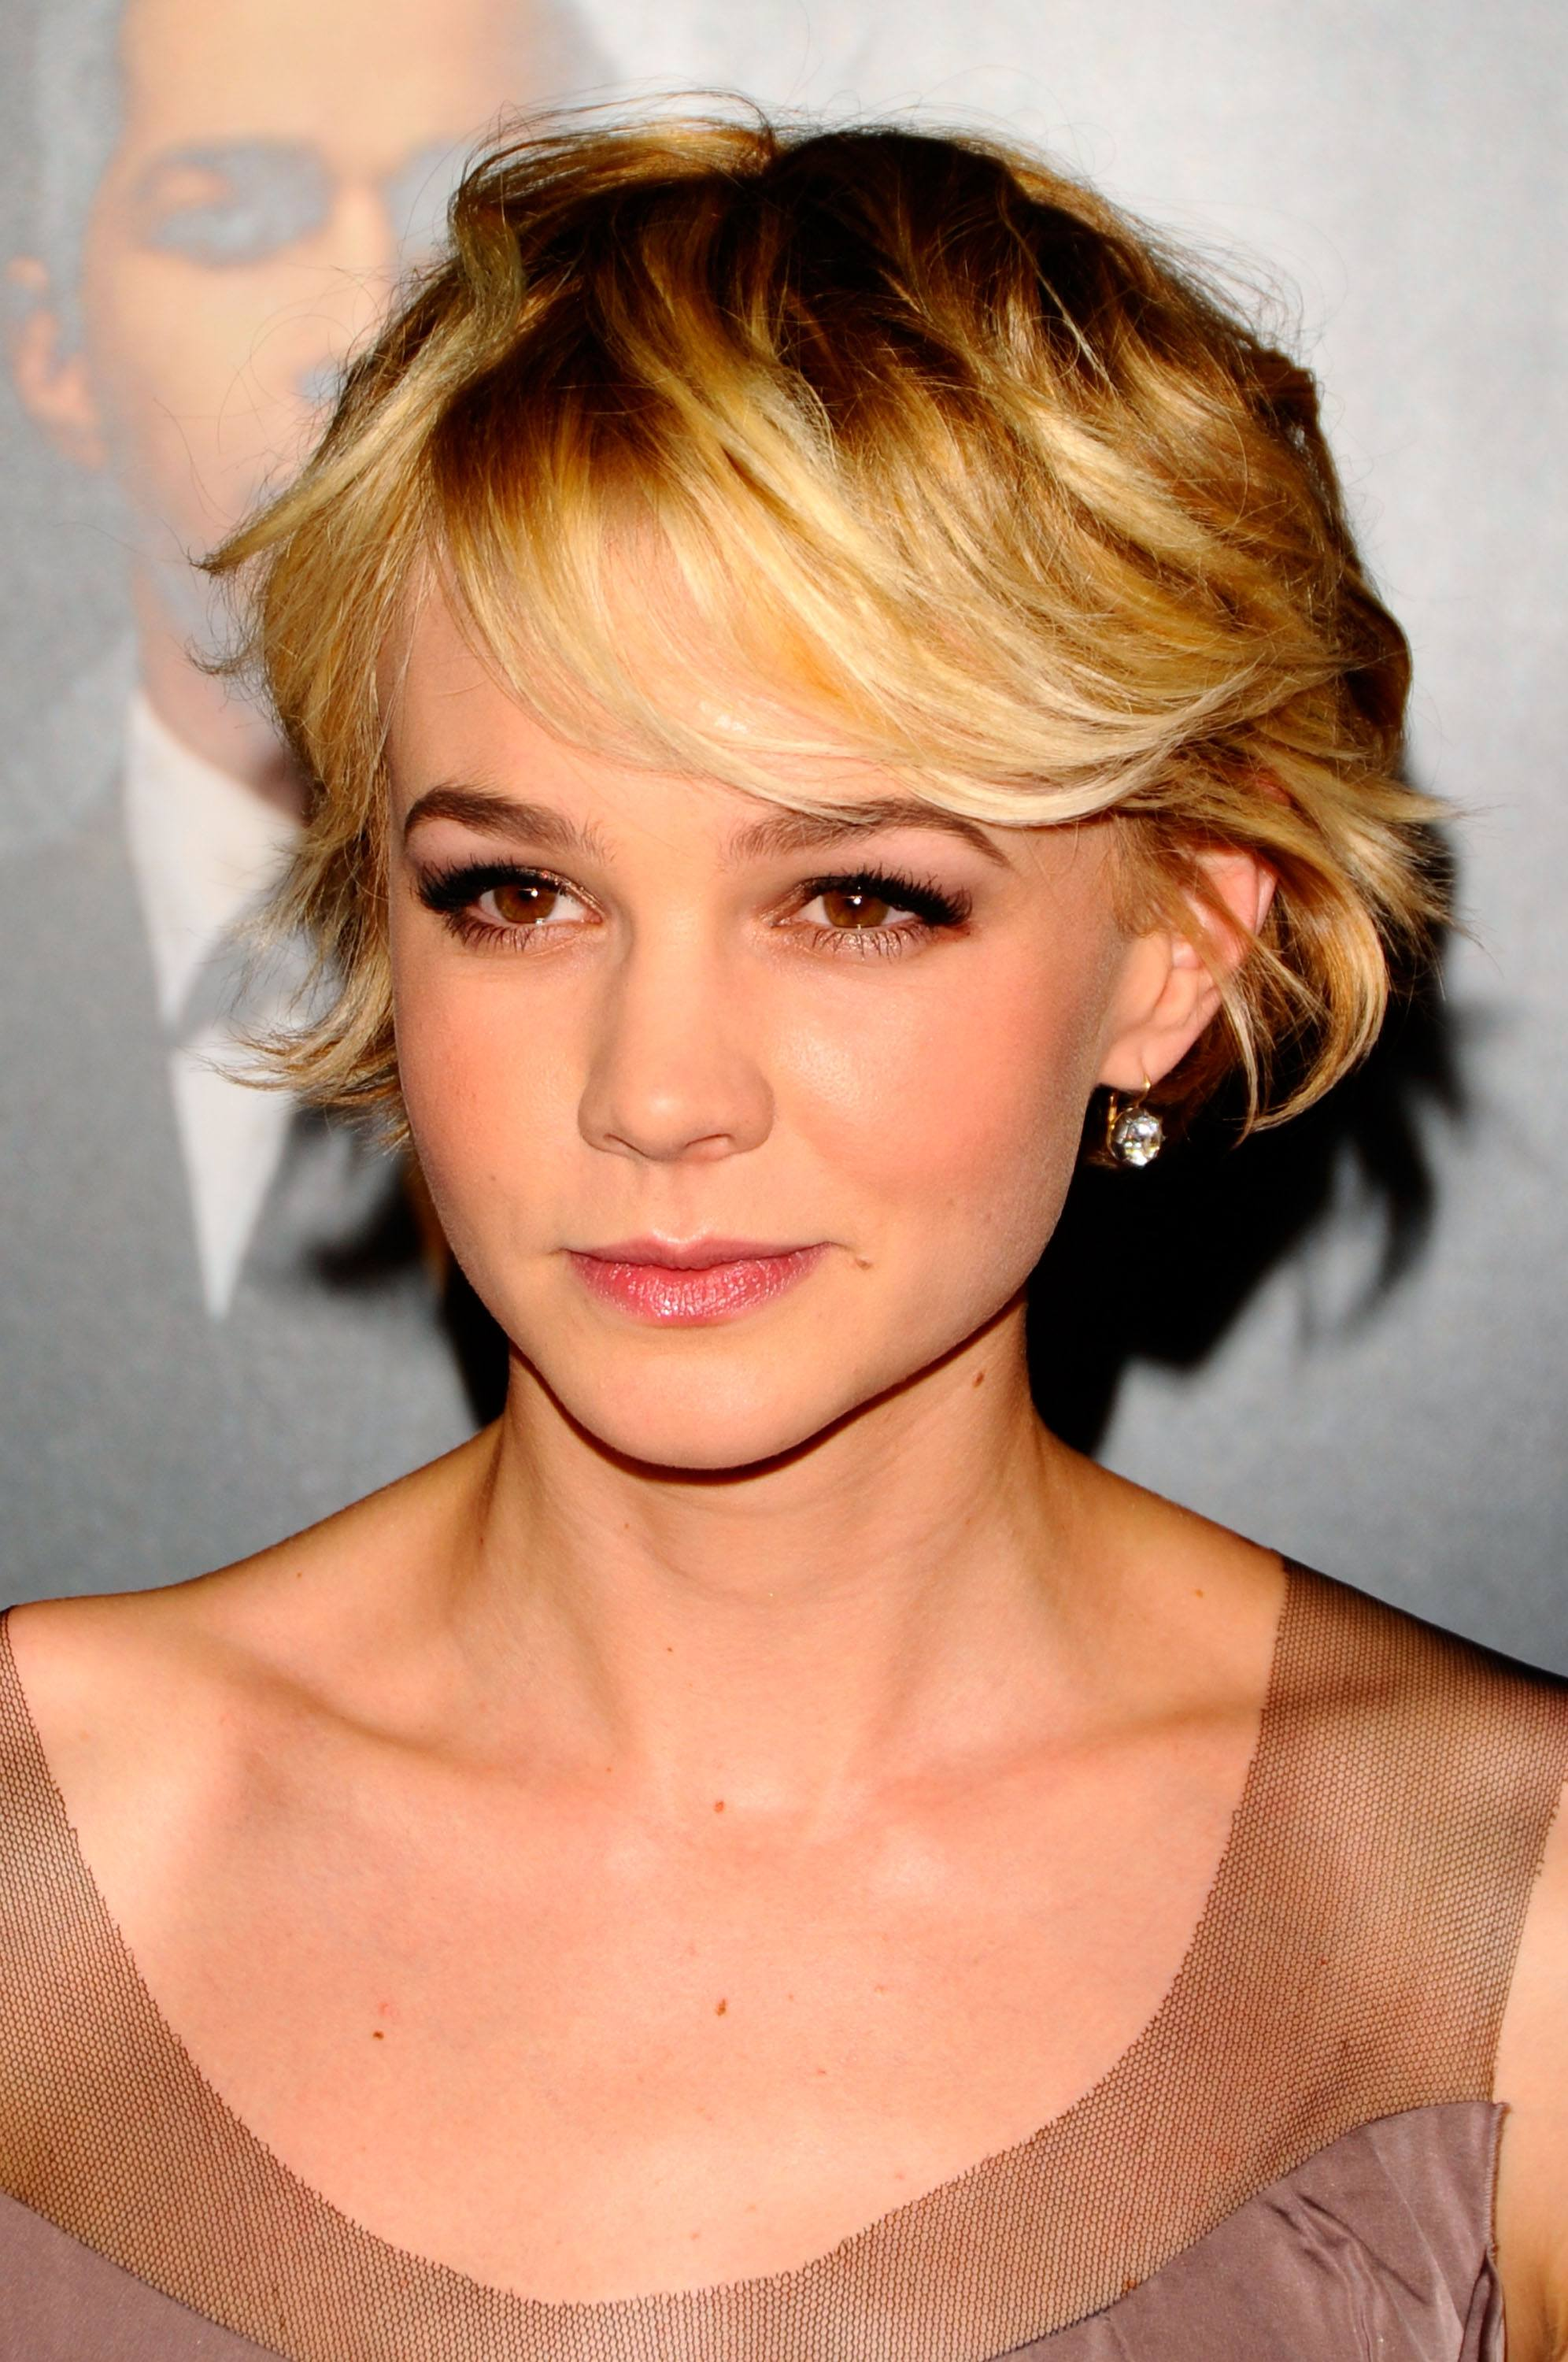 Actress Carey Mulligan